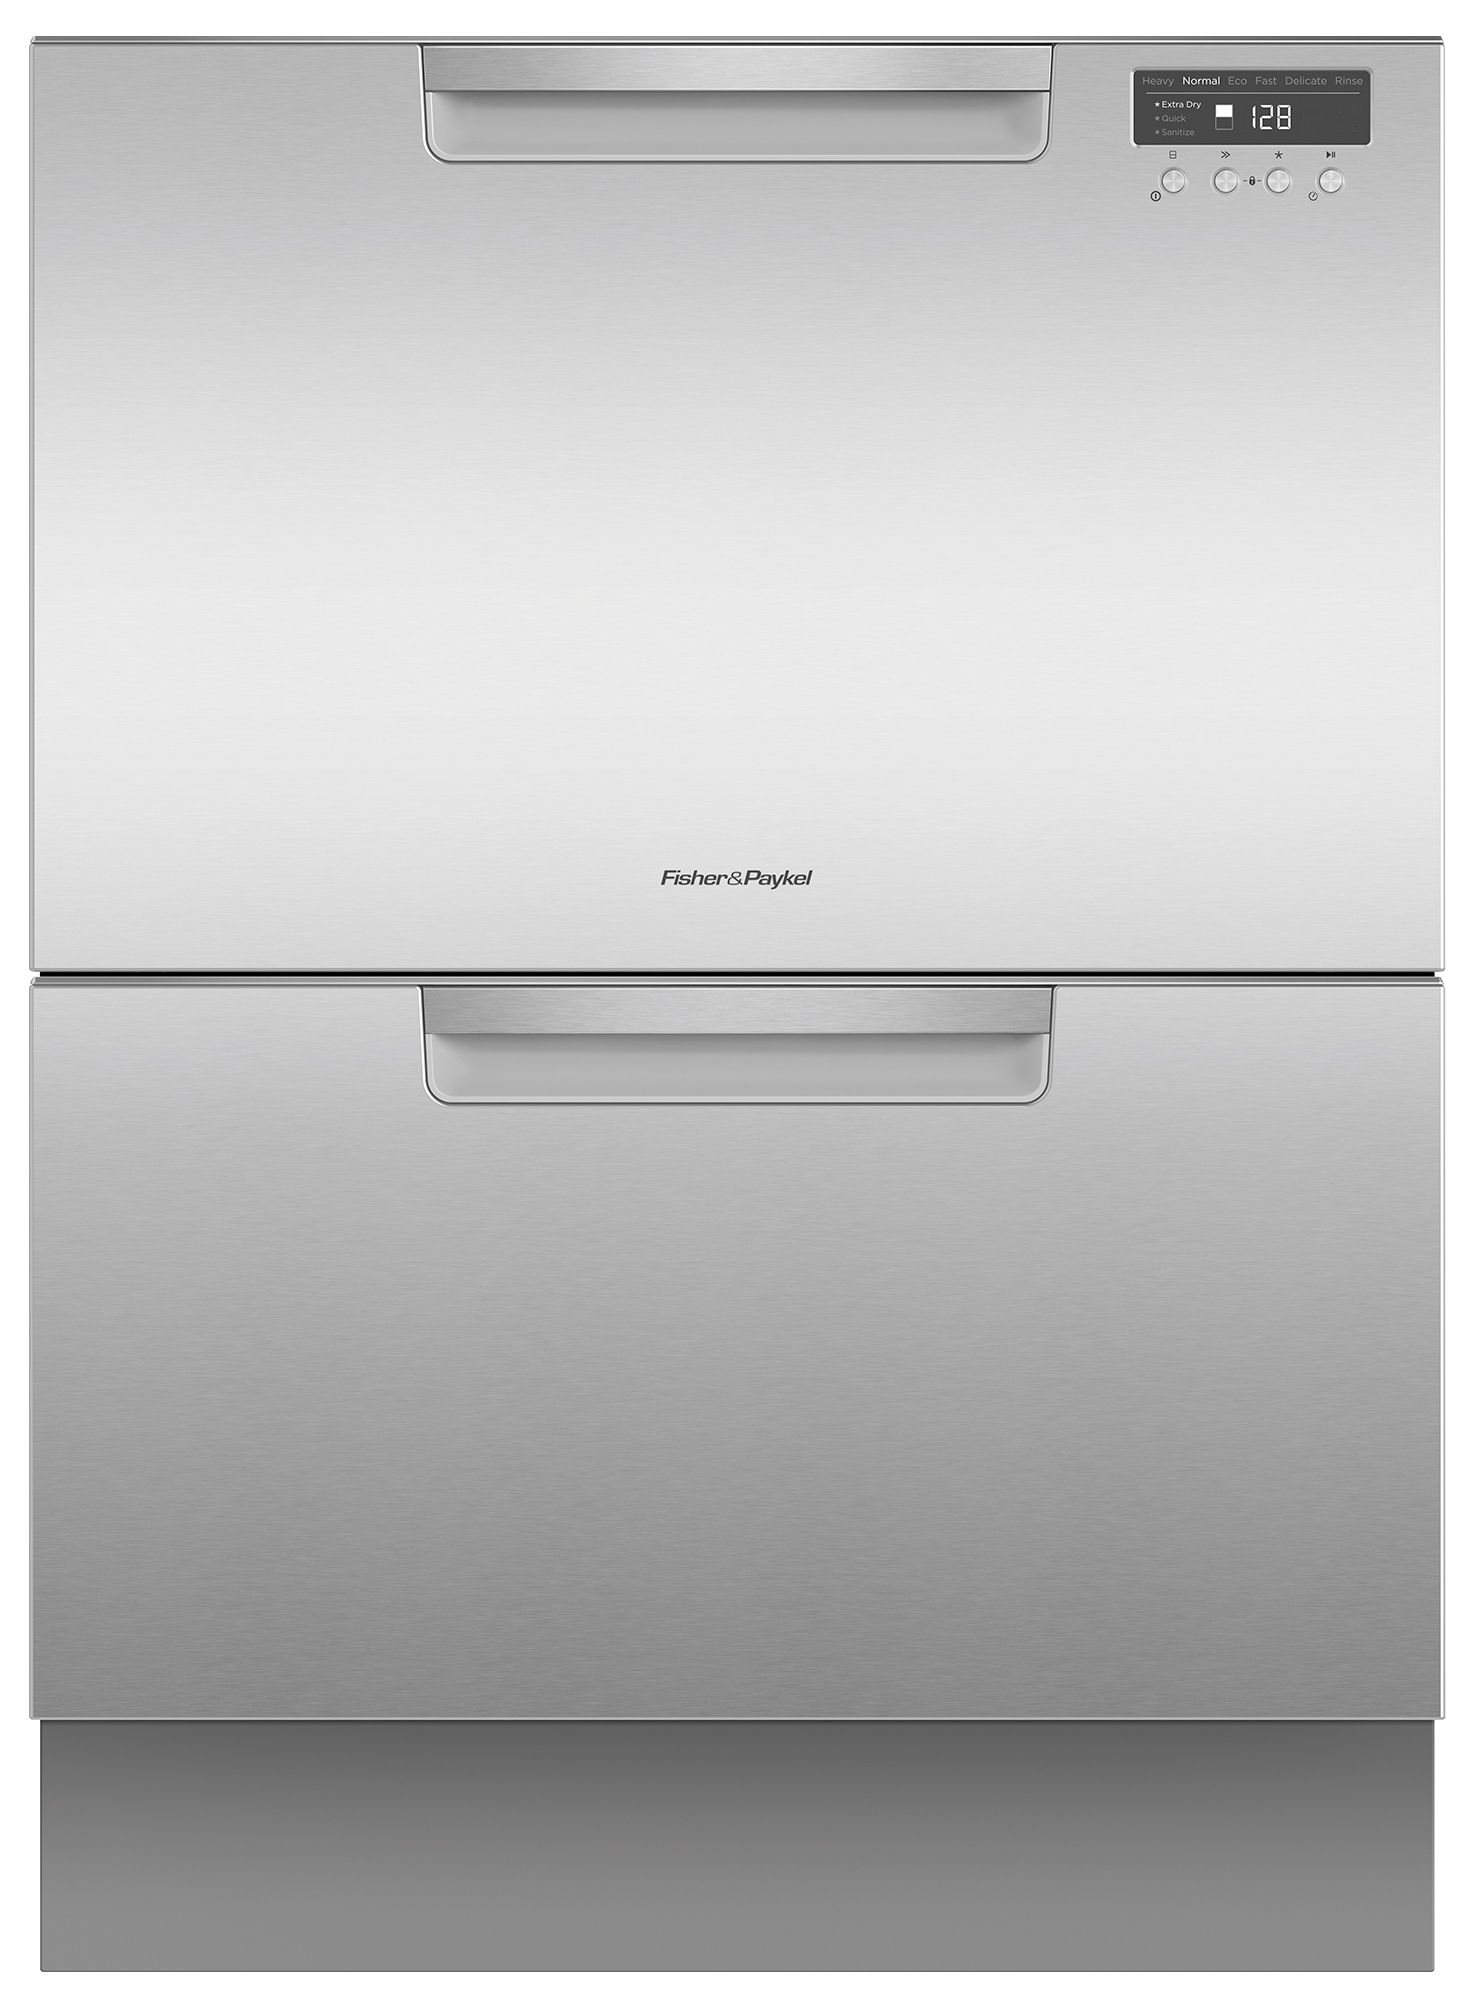 Just When You Thought The Fisher Paykel Dishwasher Drawers